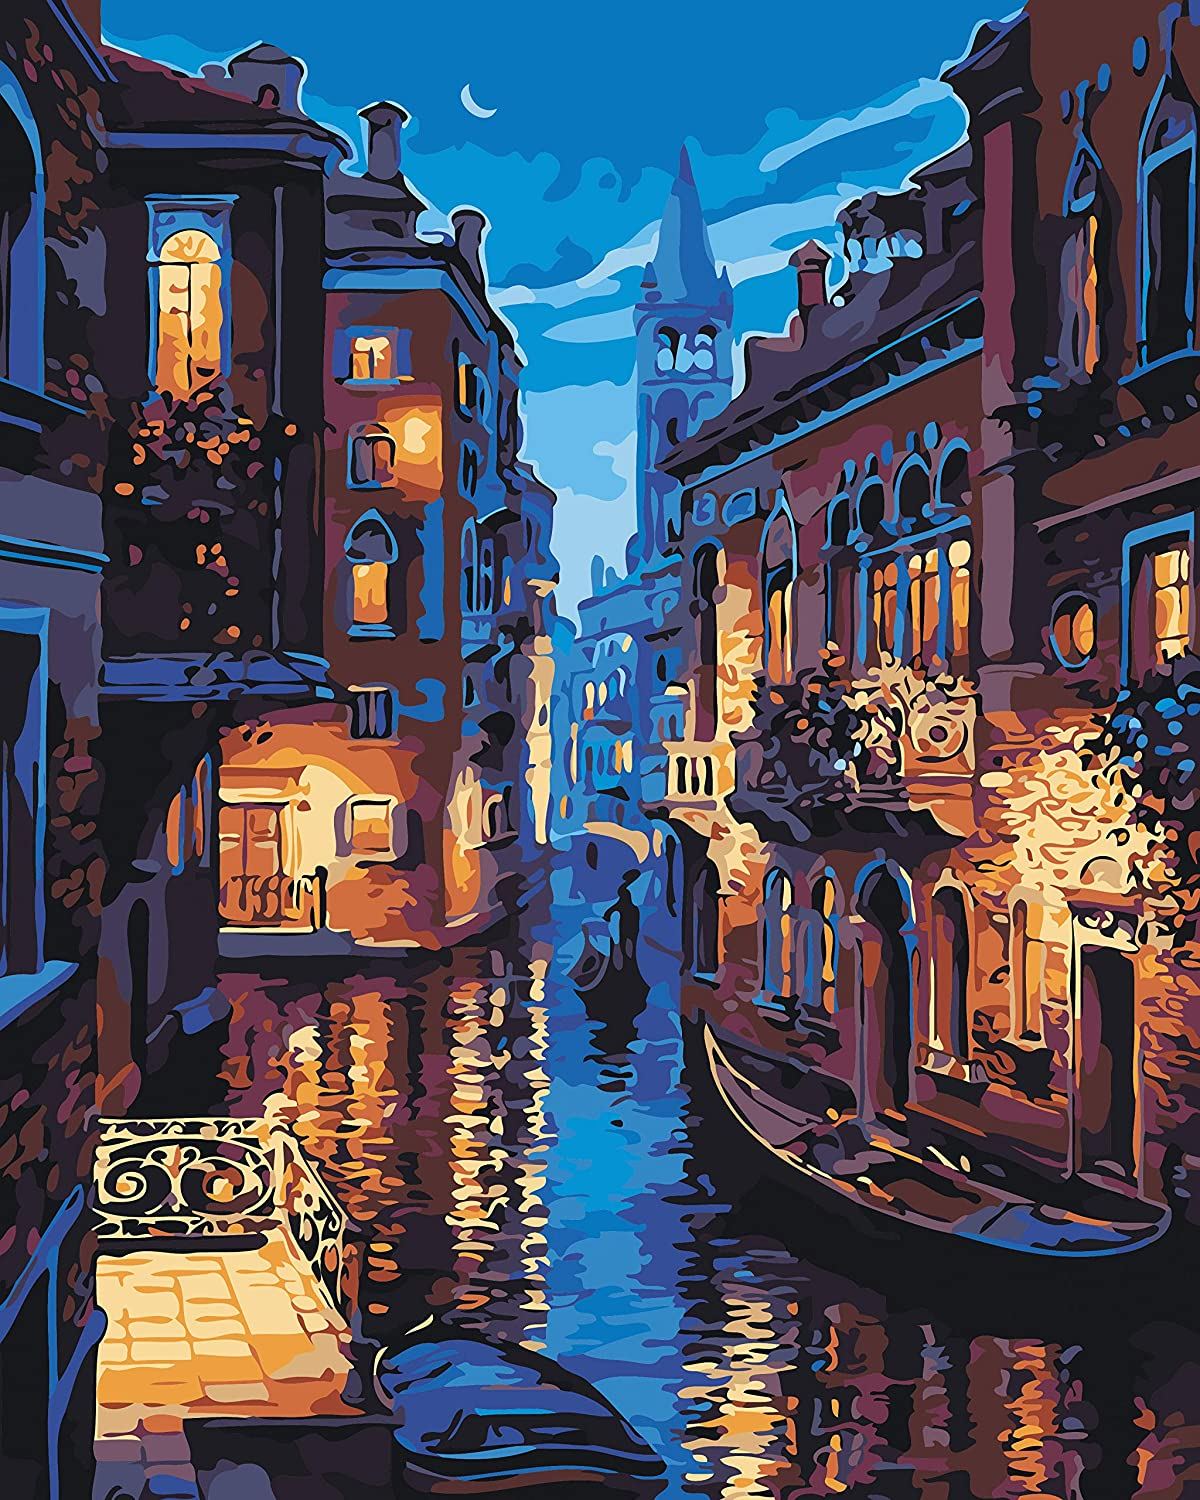 VIKMARI DIY Oil Painting Paint by Numbers Kit for Adults Painting by Numbers Kits Landscape DIY Paint by Number for Beginner Venice Night 16 x 20 inch (Without Frame)